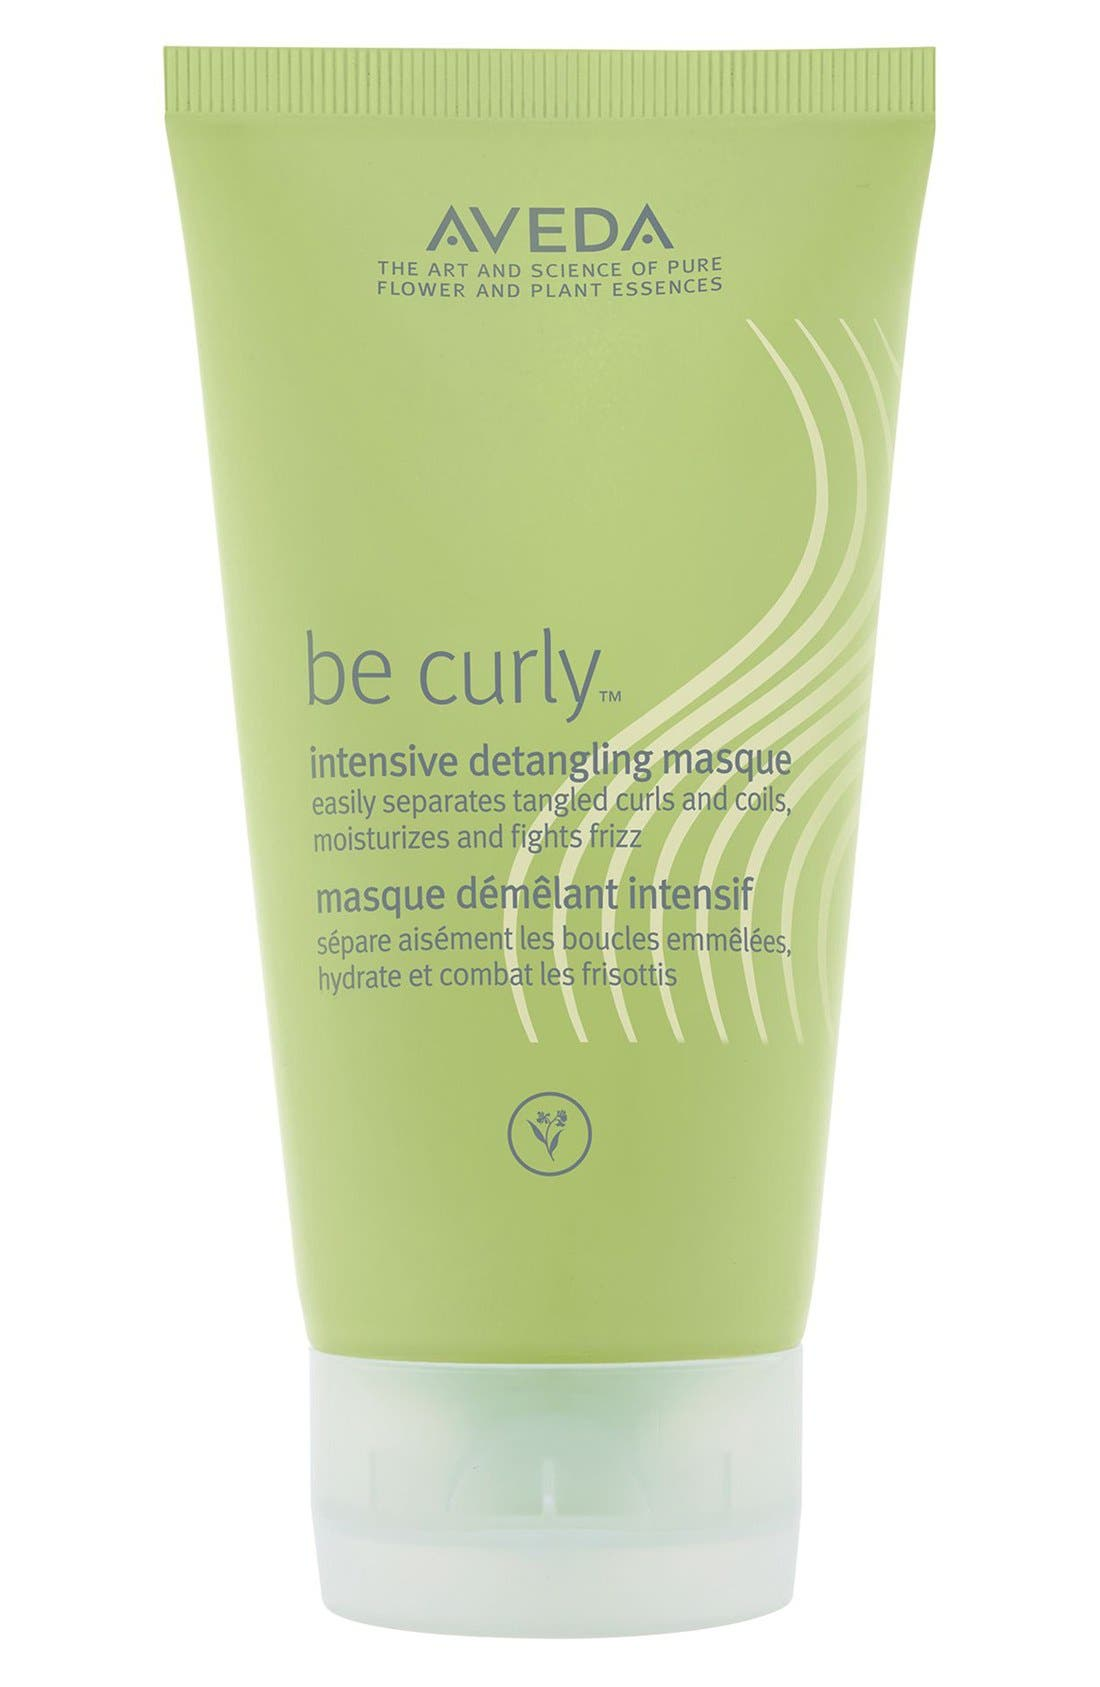 Be Curly(TM) Intensive Detangling Masque